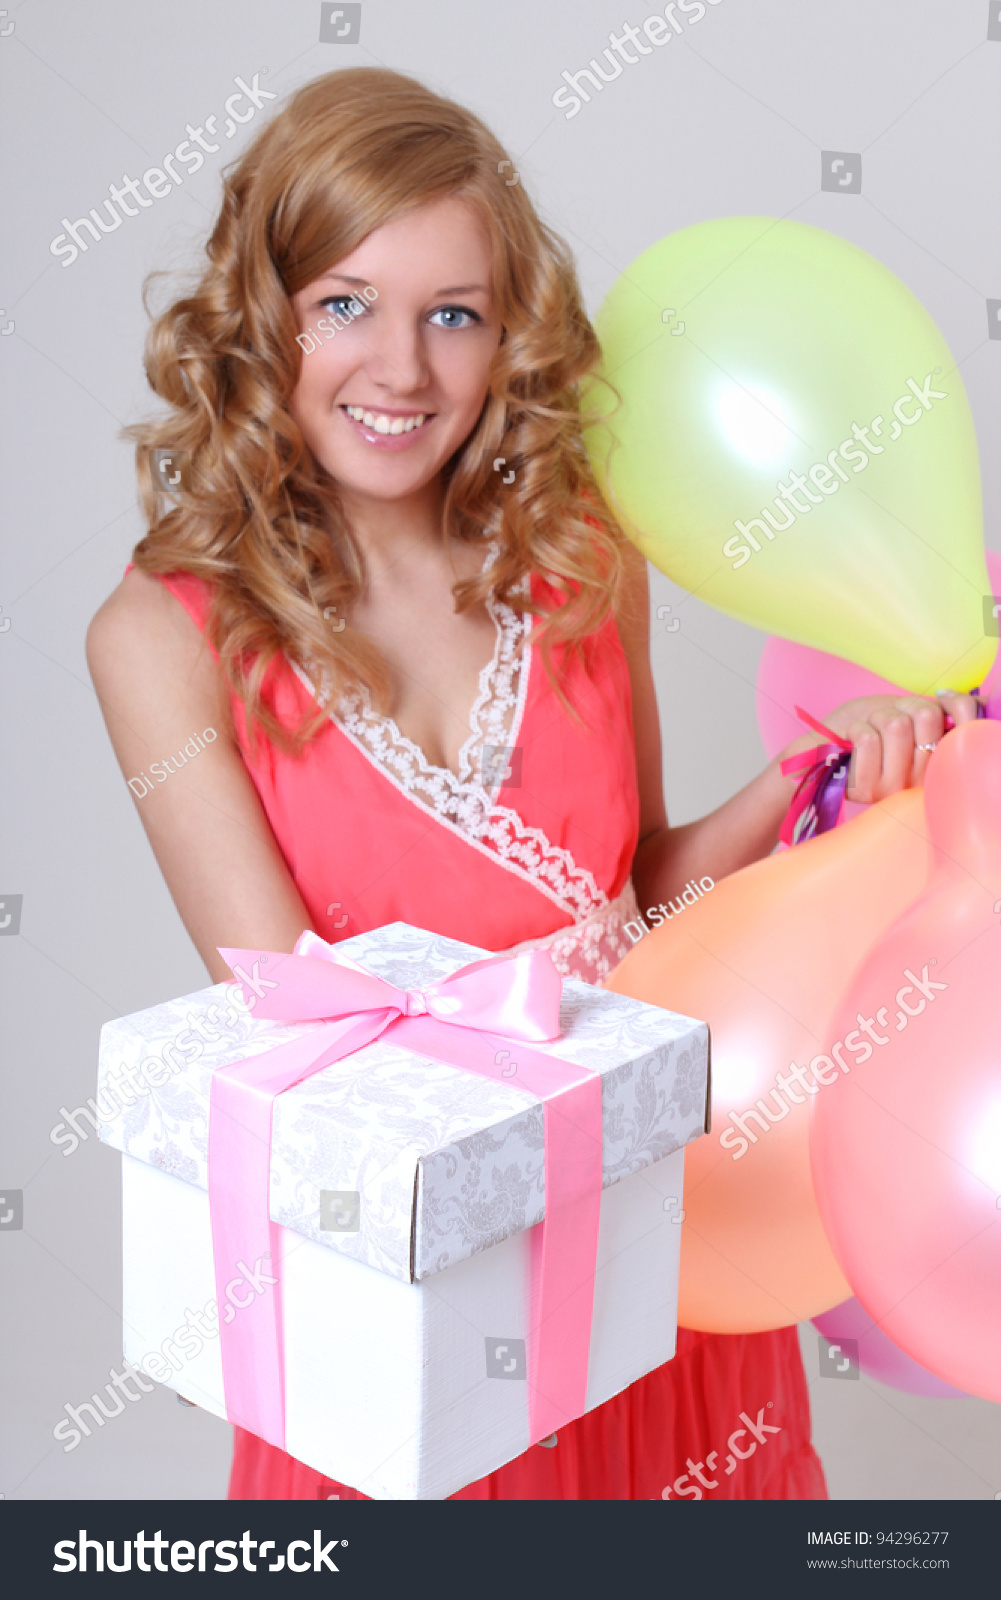 Happy Birthday Girl With Balloons Showing Her Gift